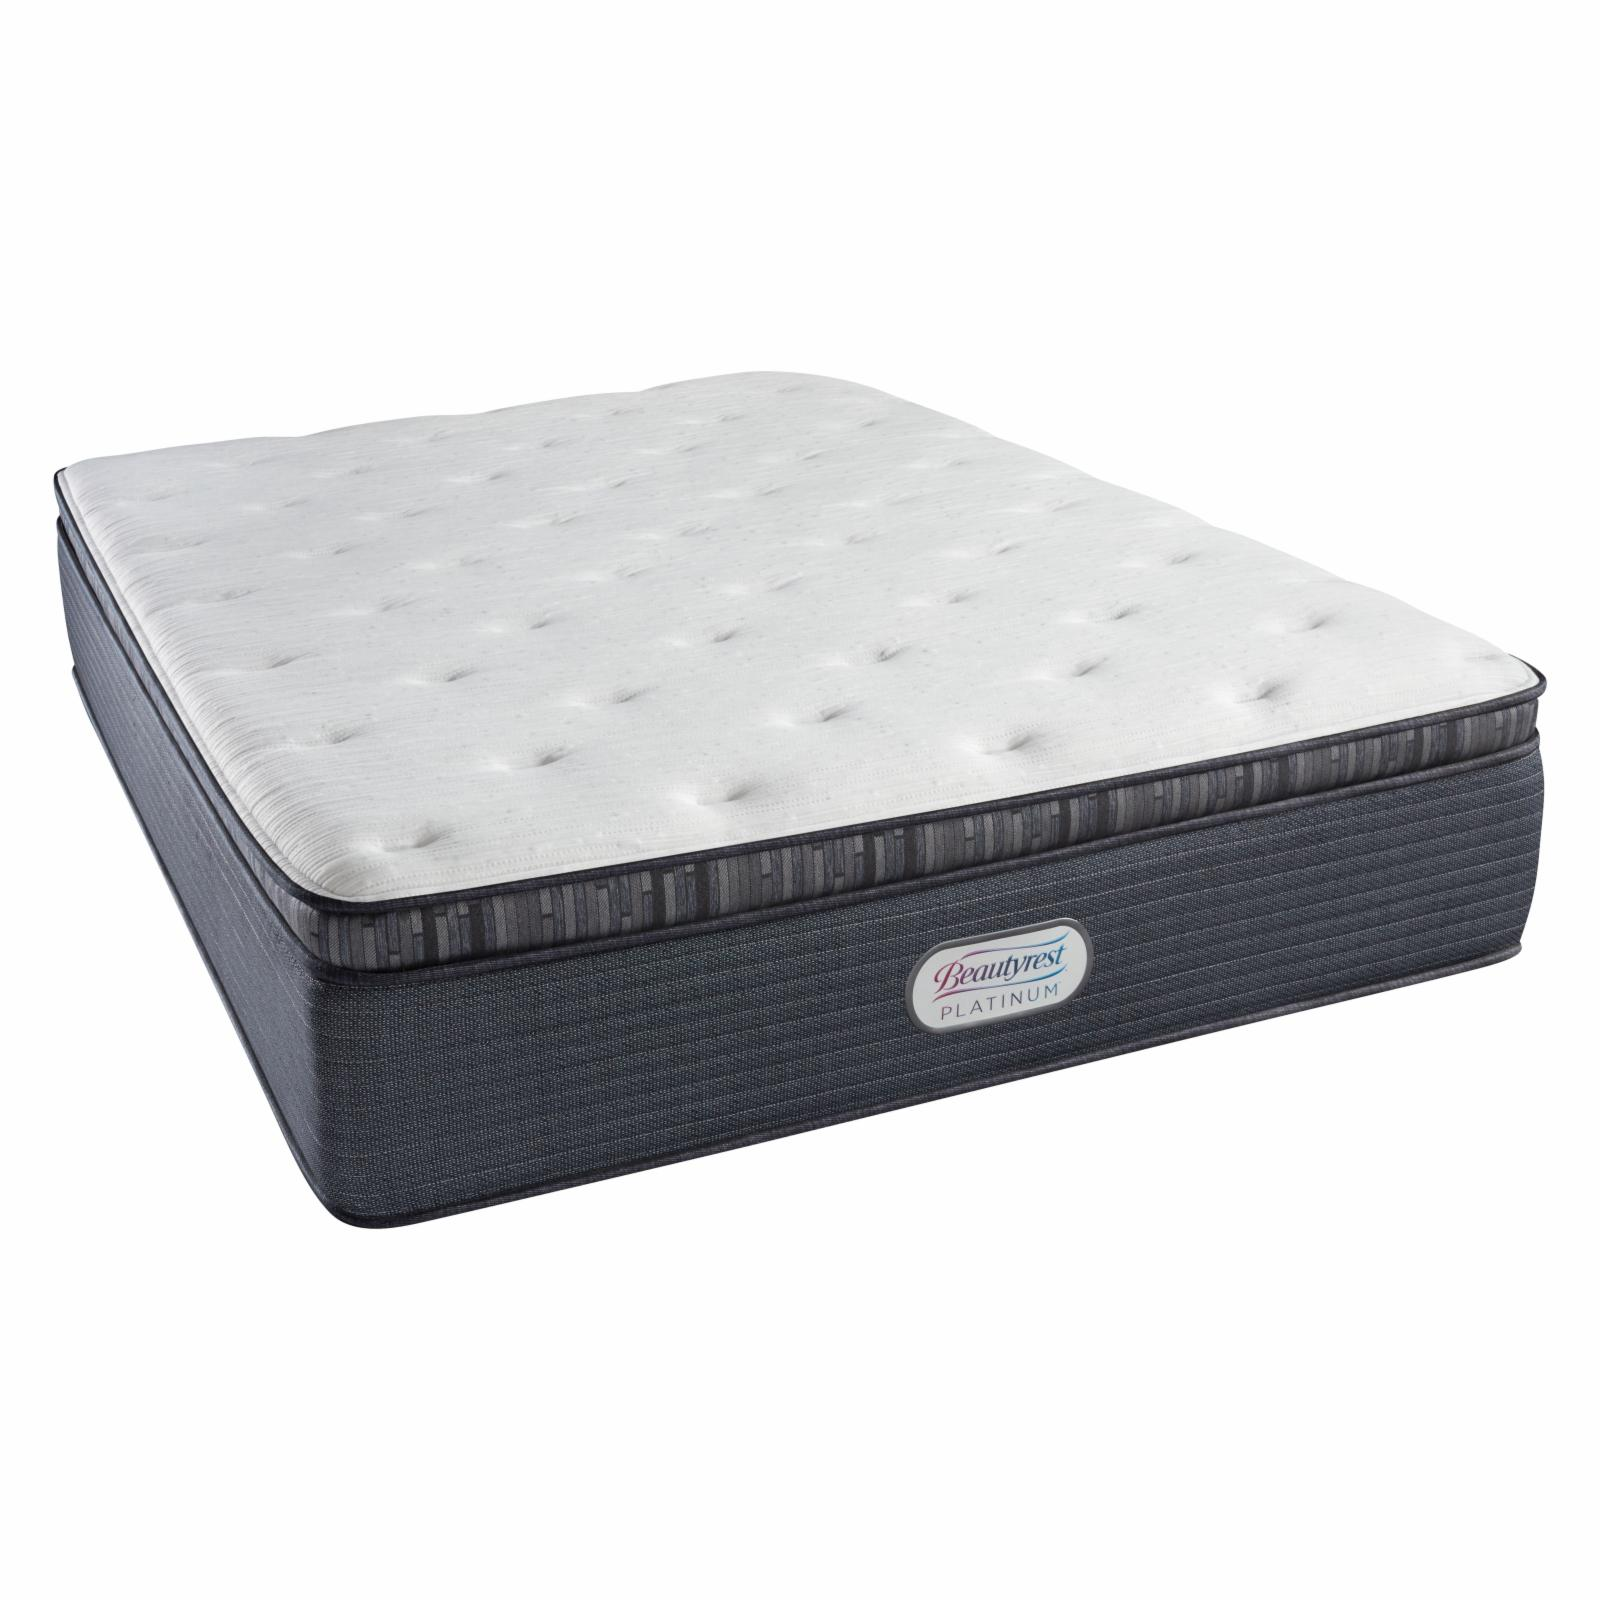 Beautyrest Platinum Spring Grove 15 in. Luxury Firm Pillow Top Mattress - 700800104-1020